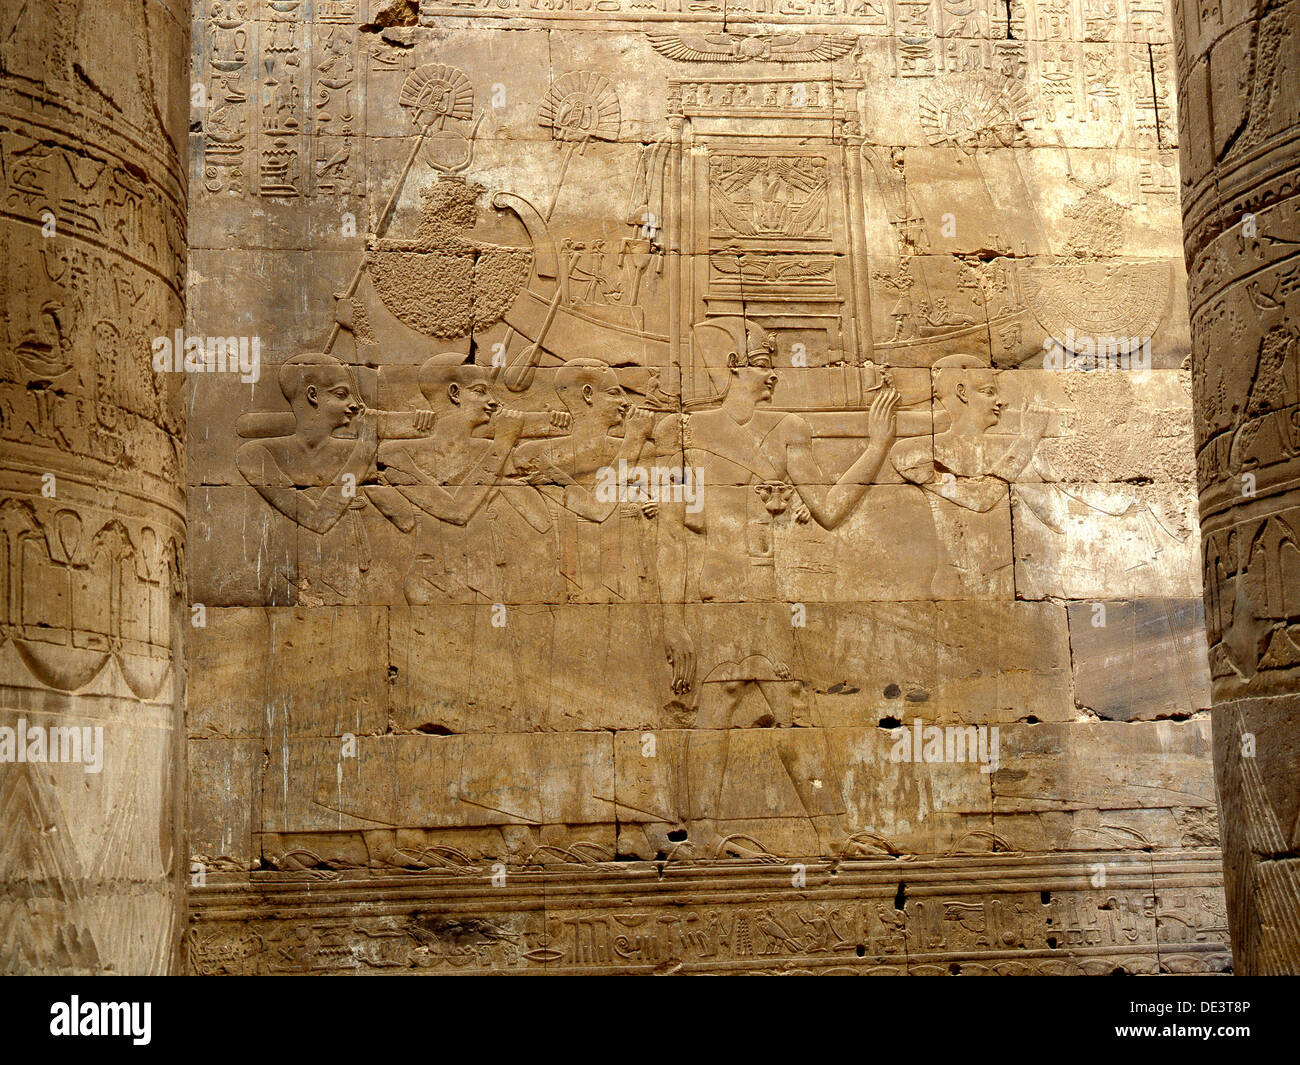 A relief in the Hypostyle Hall at Edfu depicting the procession of the sacred barque. - Stock Image